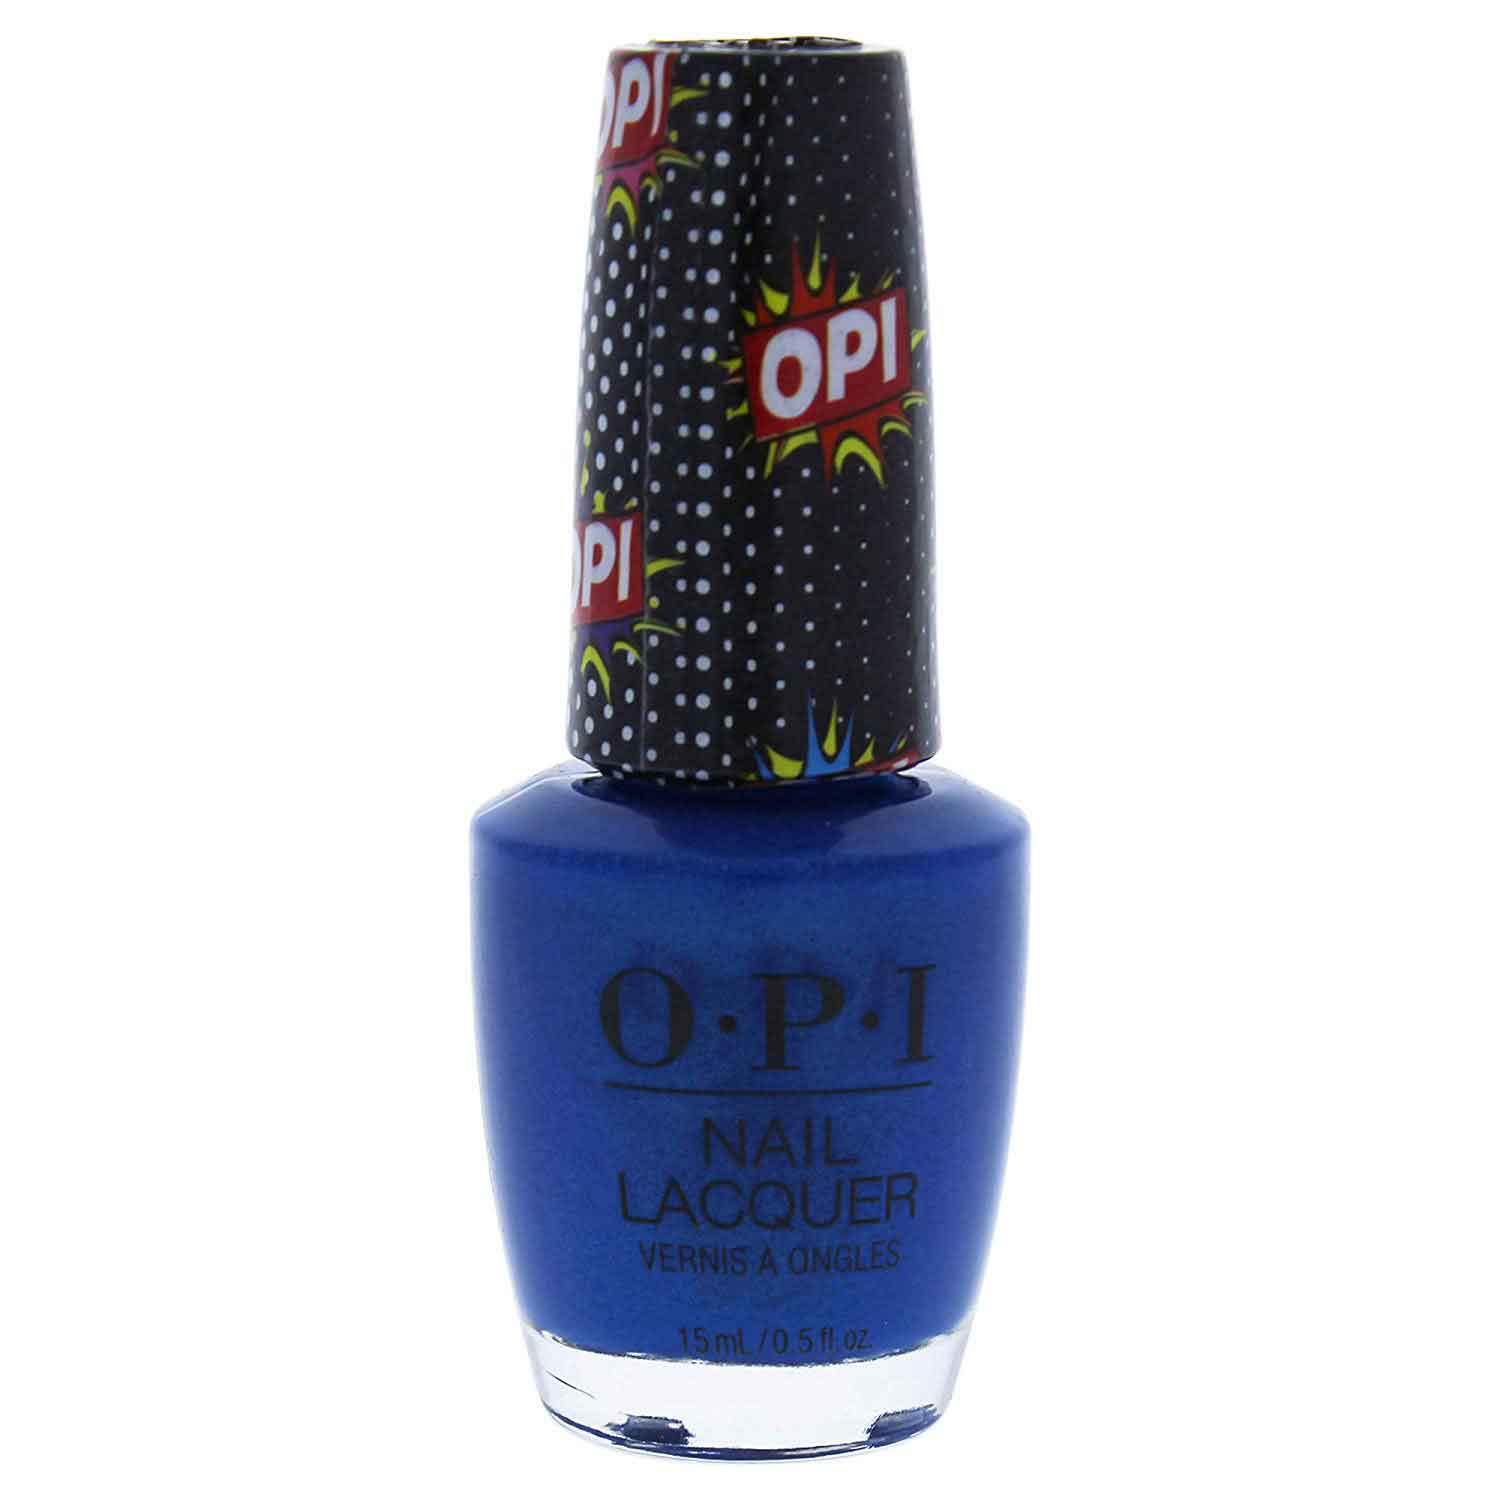 OPI Nail Lacquer Pop Culture Collection in Bumpy Road Ahead